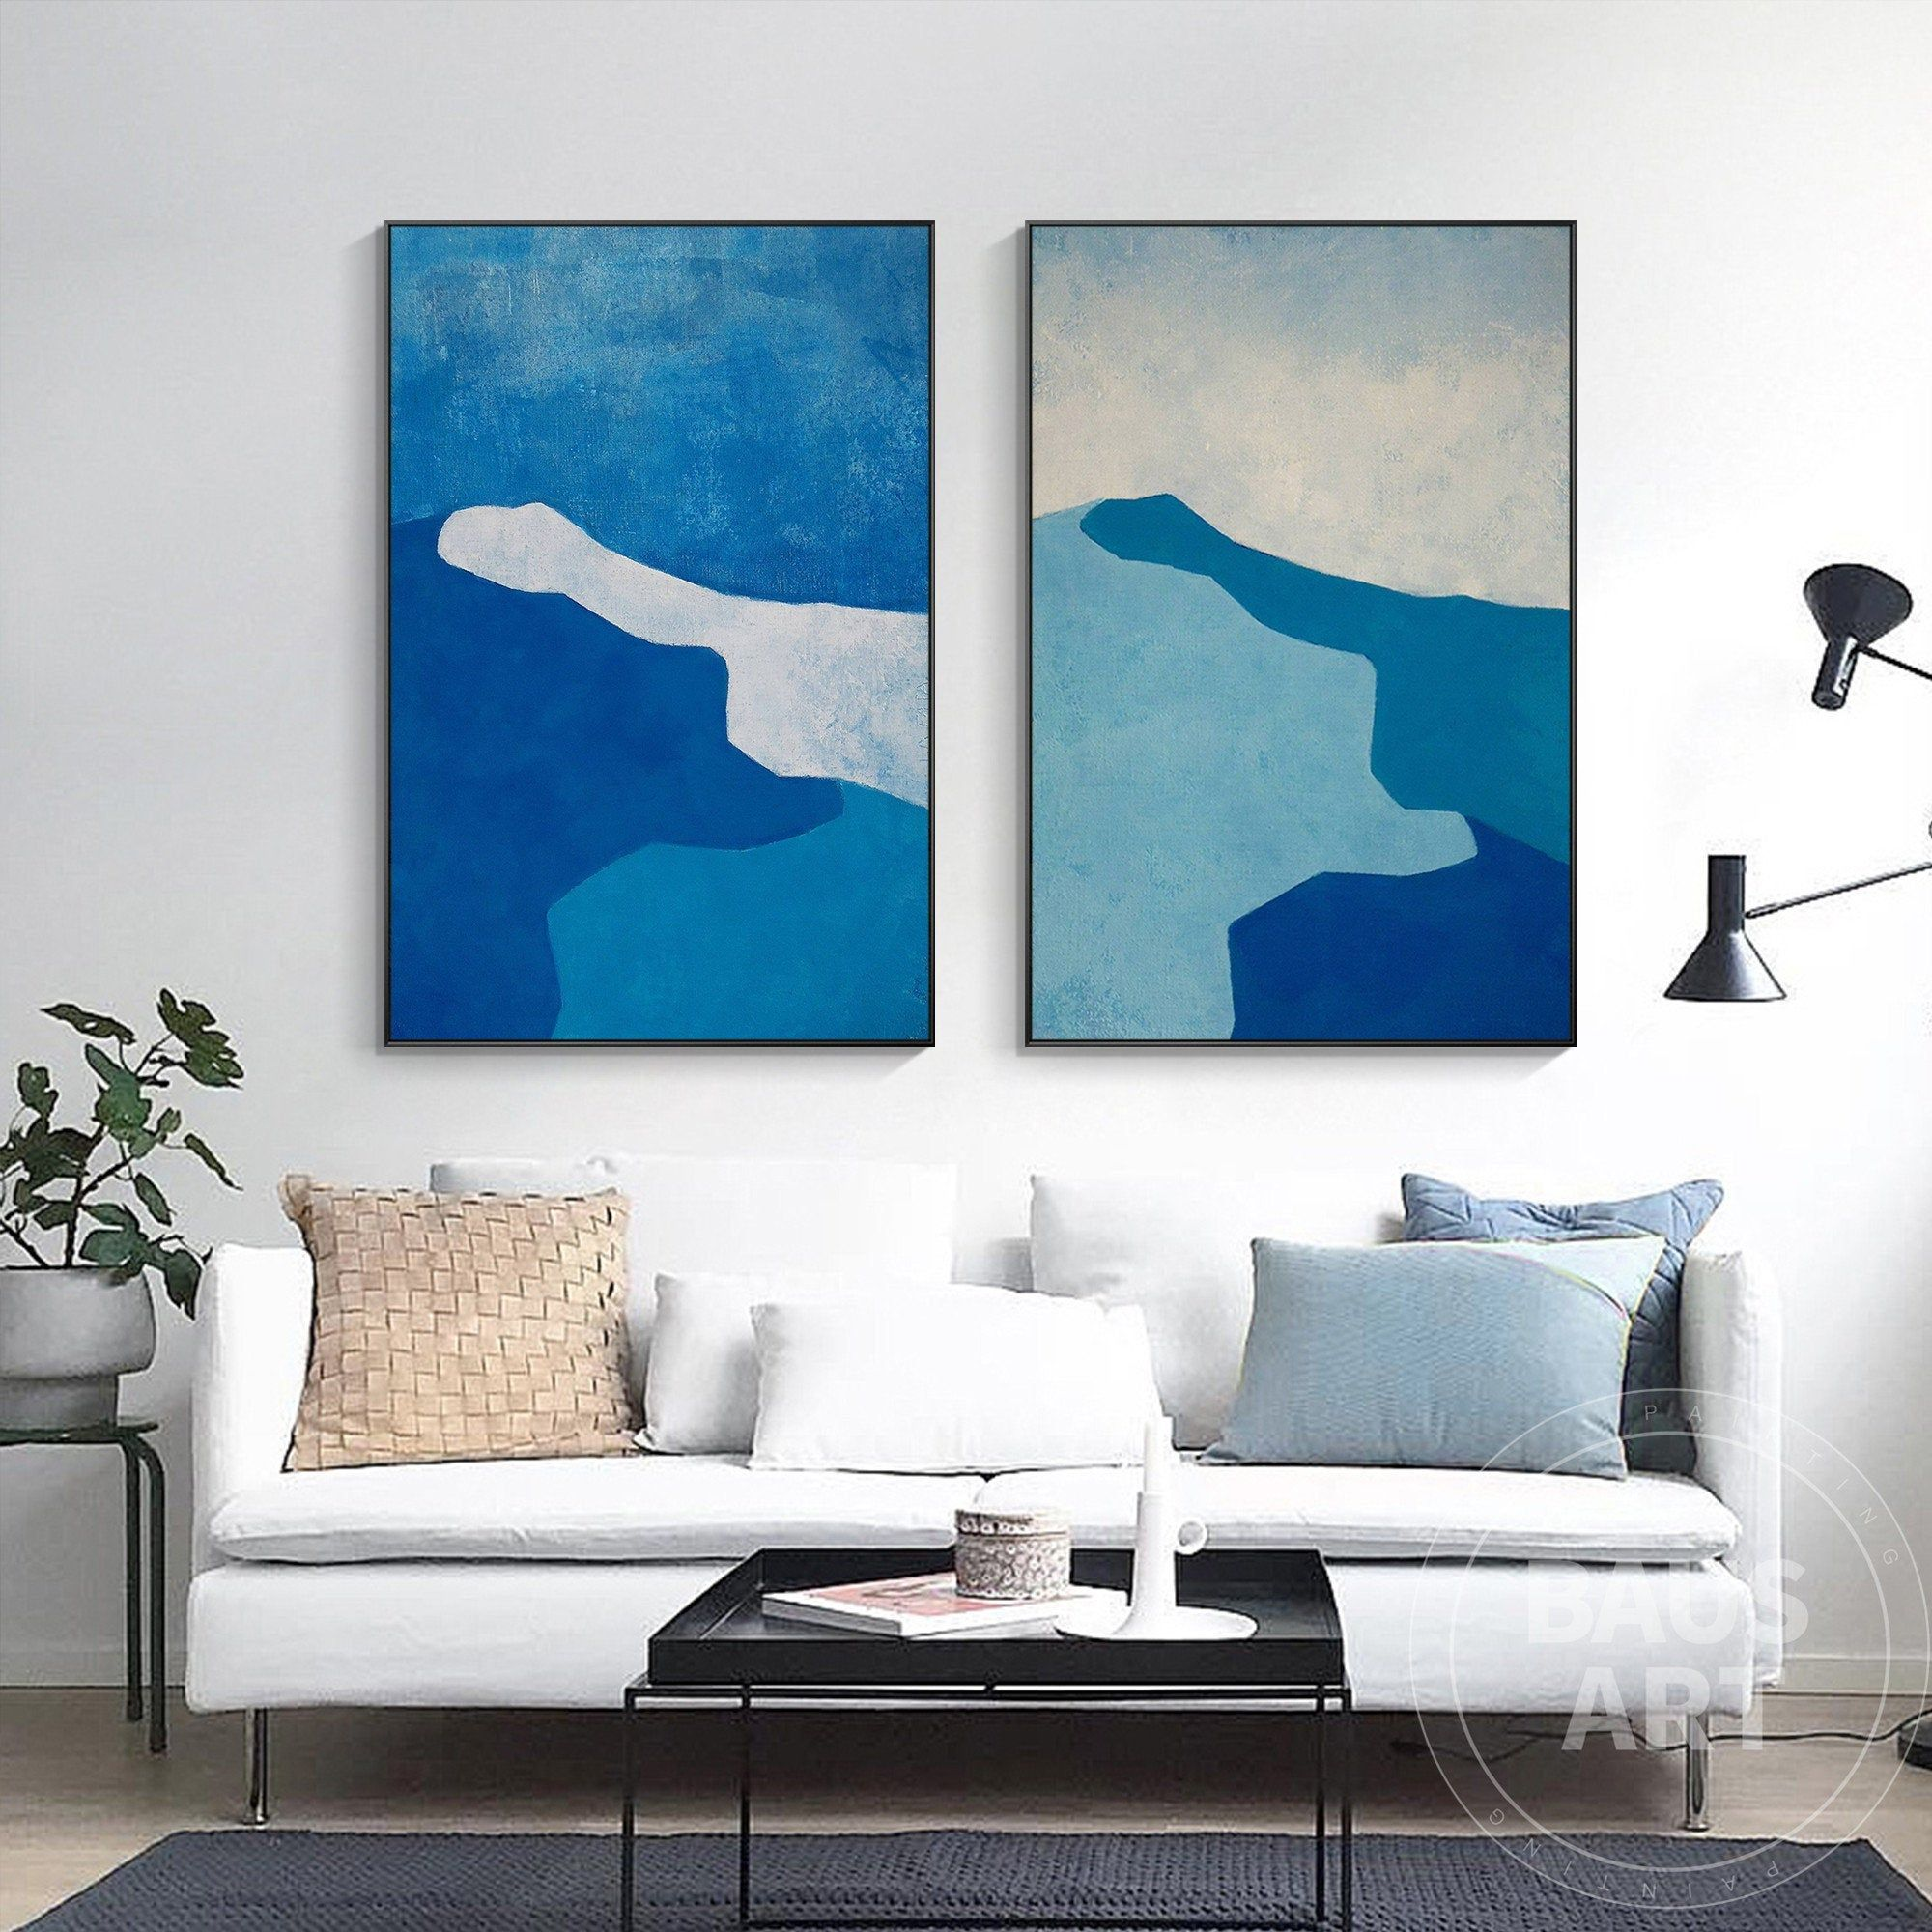 Abstract Double Mountains Painting Framed Wall Art Set Of 2 Etsy In 2021 Frames On Wall Wall Art Sets Large Wall Art